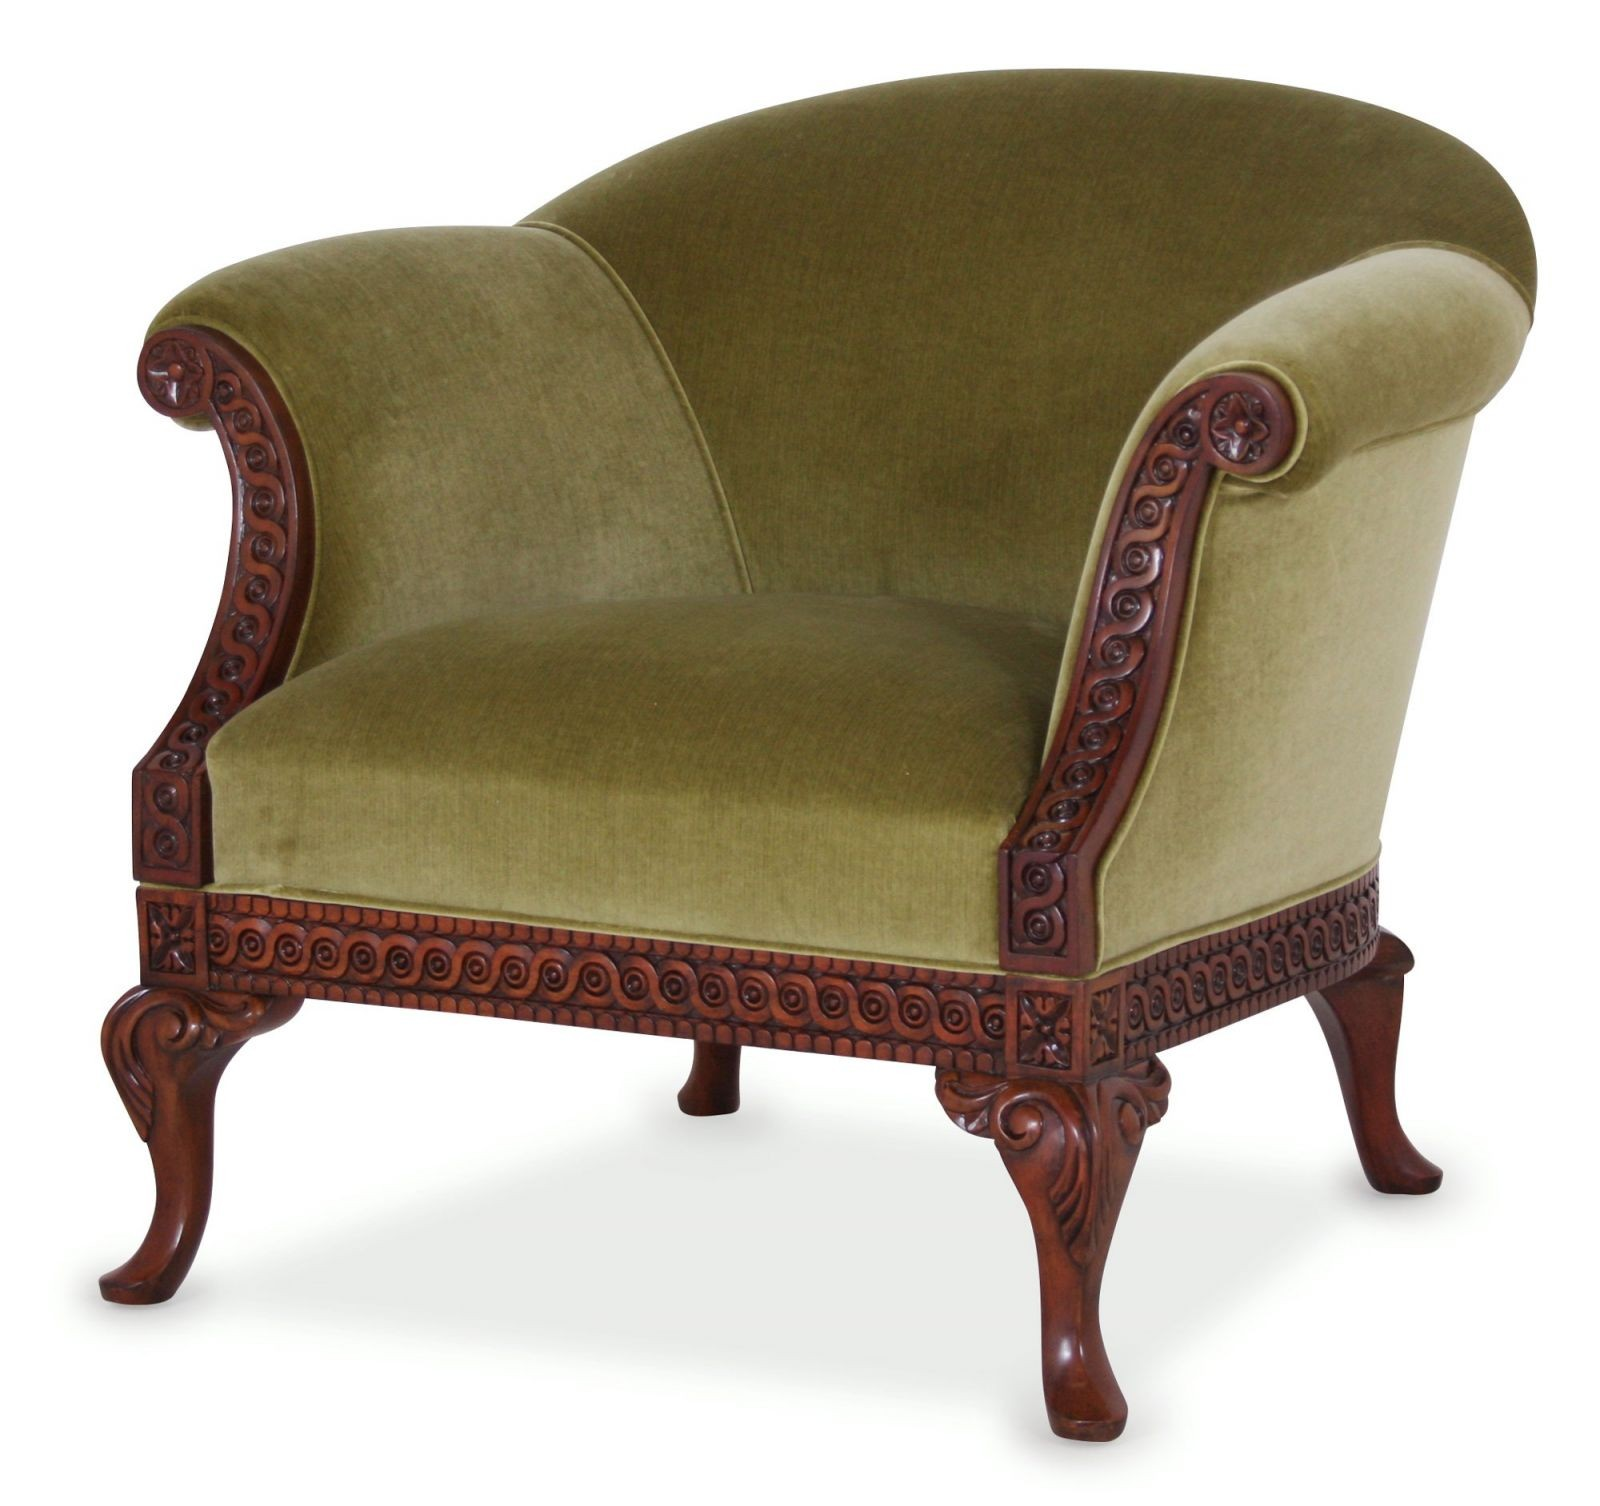 Pride Regency style chair in Riffle vintage velvet